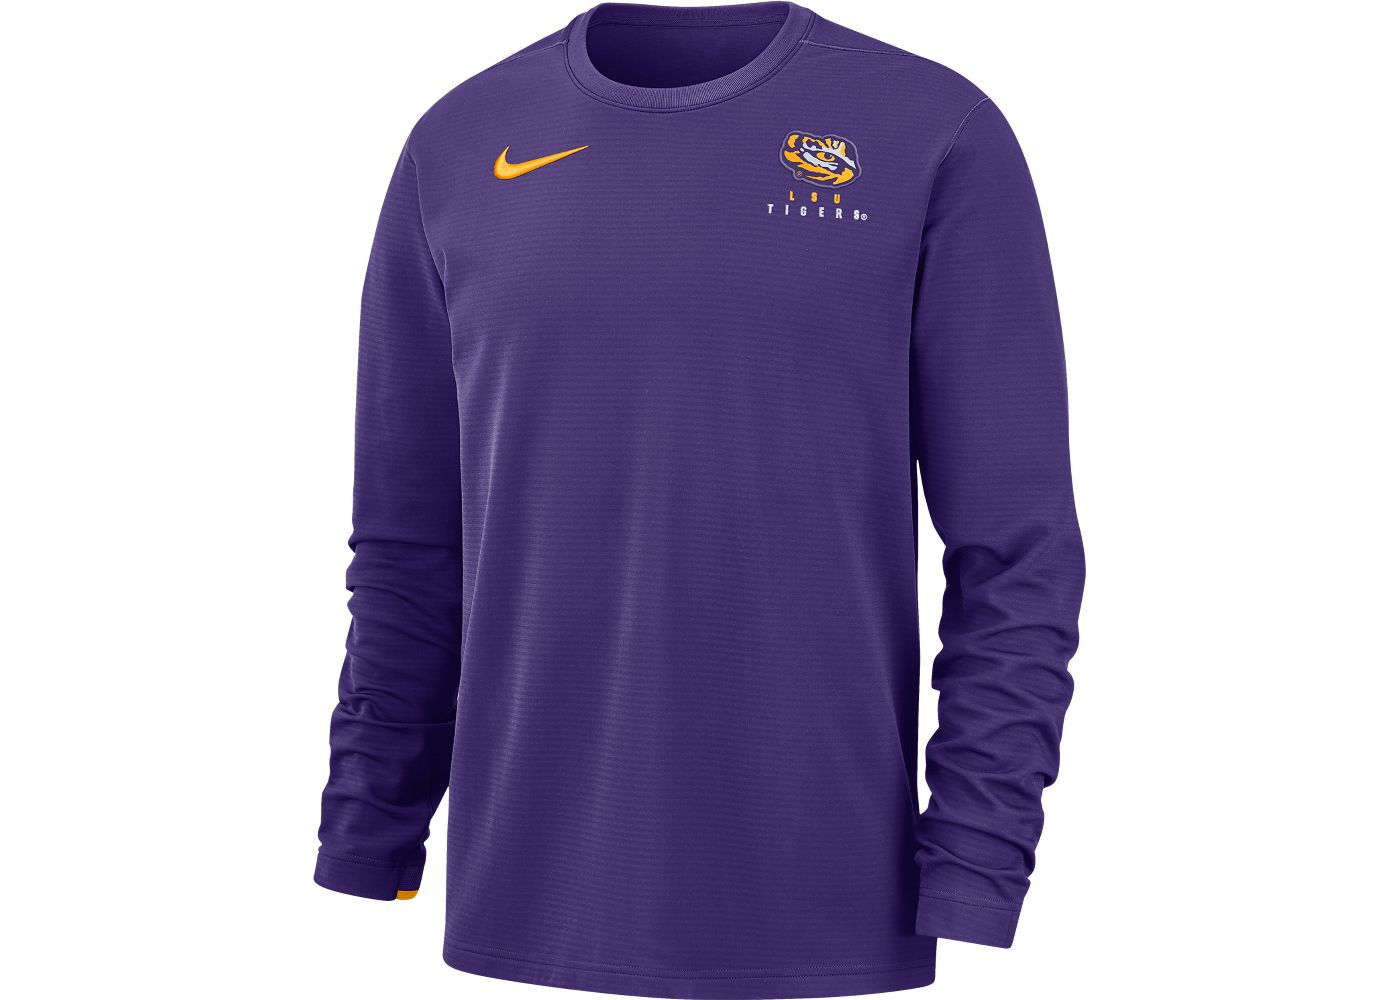 Nike Men's LSU Tigers Purple Dri-FIT Modern Long Sleeve Crew Neck T-Shirt